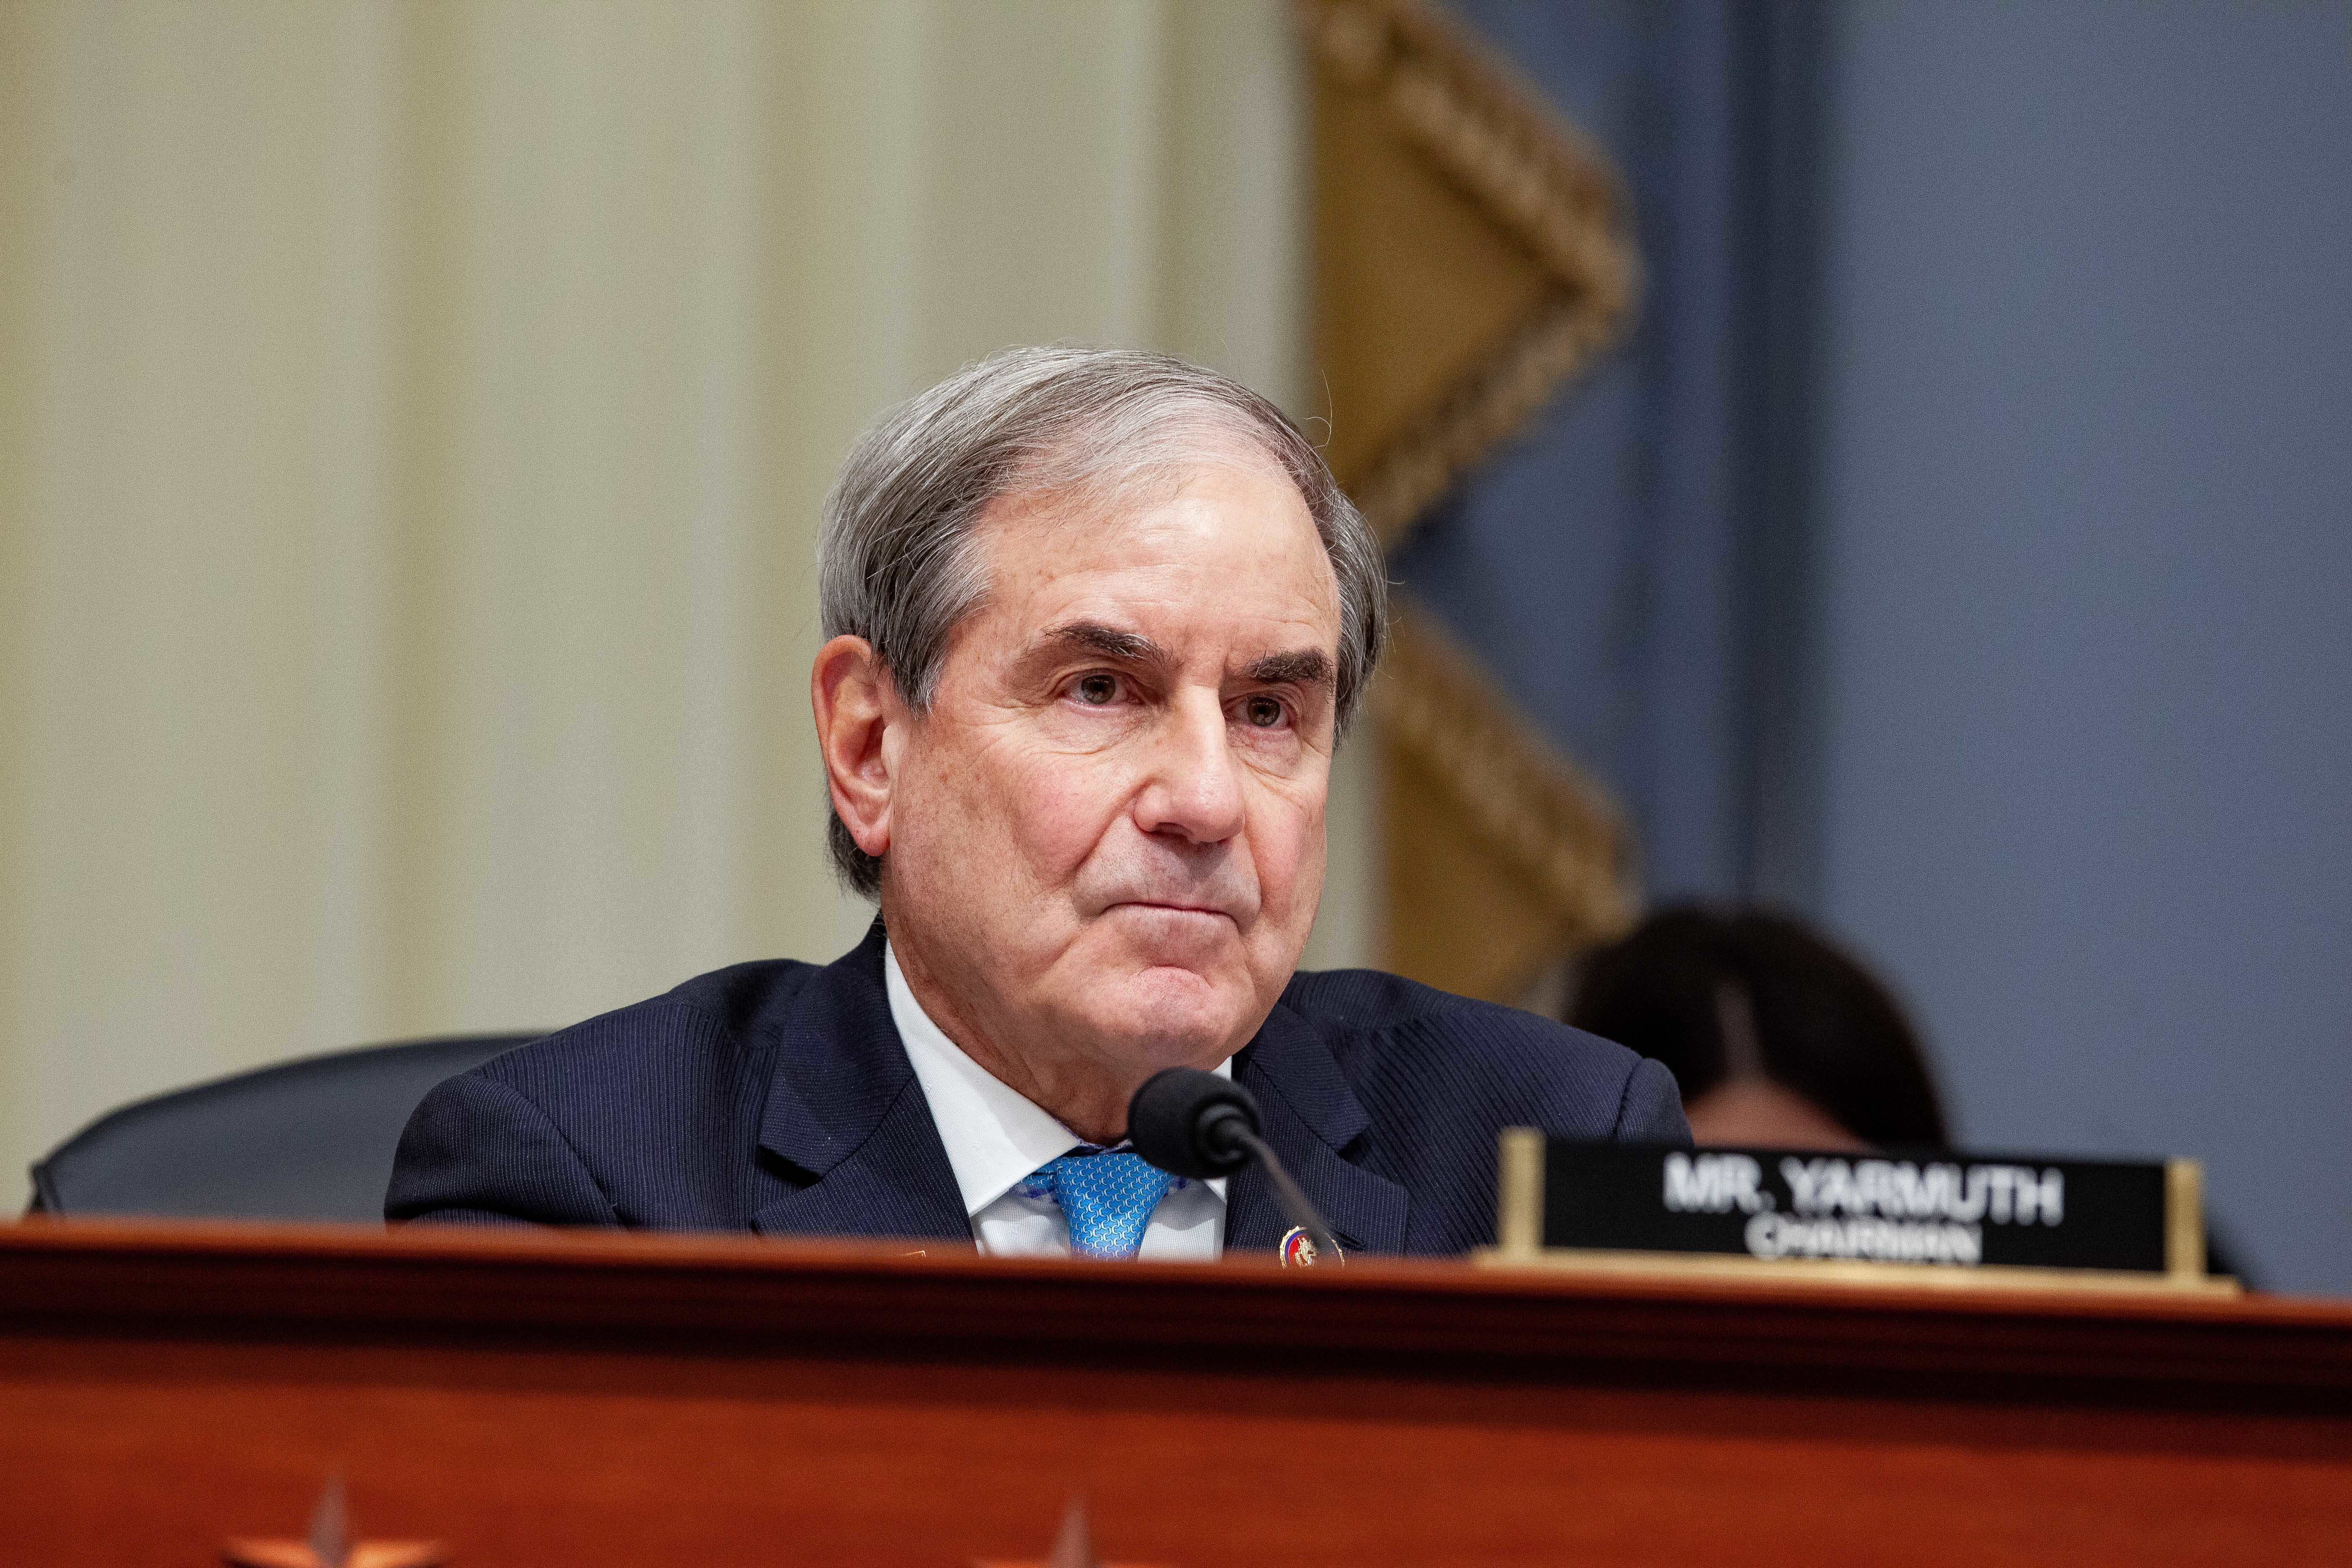 Rep. John Yarmuth (D-Ky.), chair of the House Budget Committee, listens during a Tuesday hearing with the acting director of